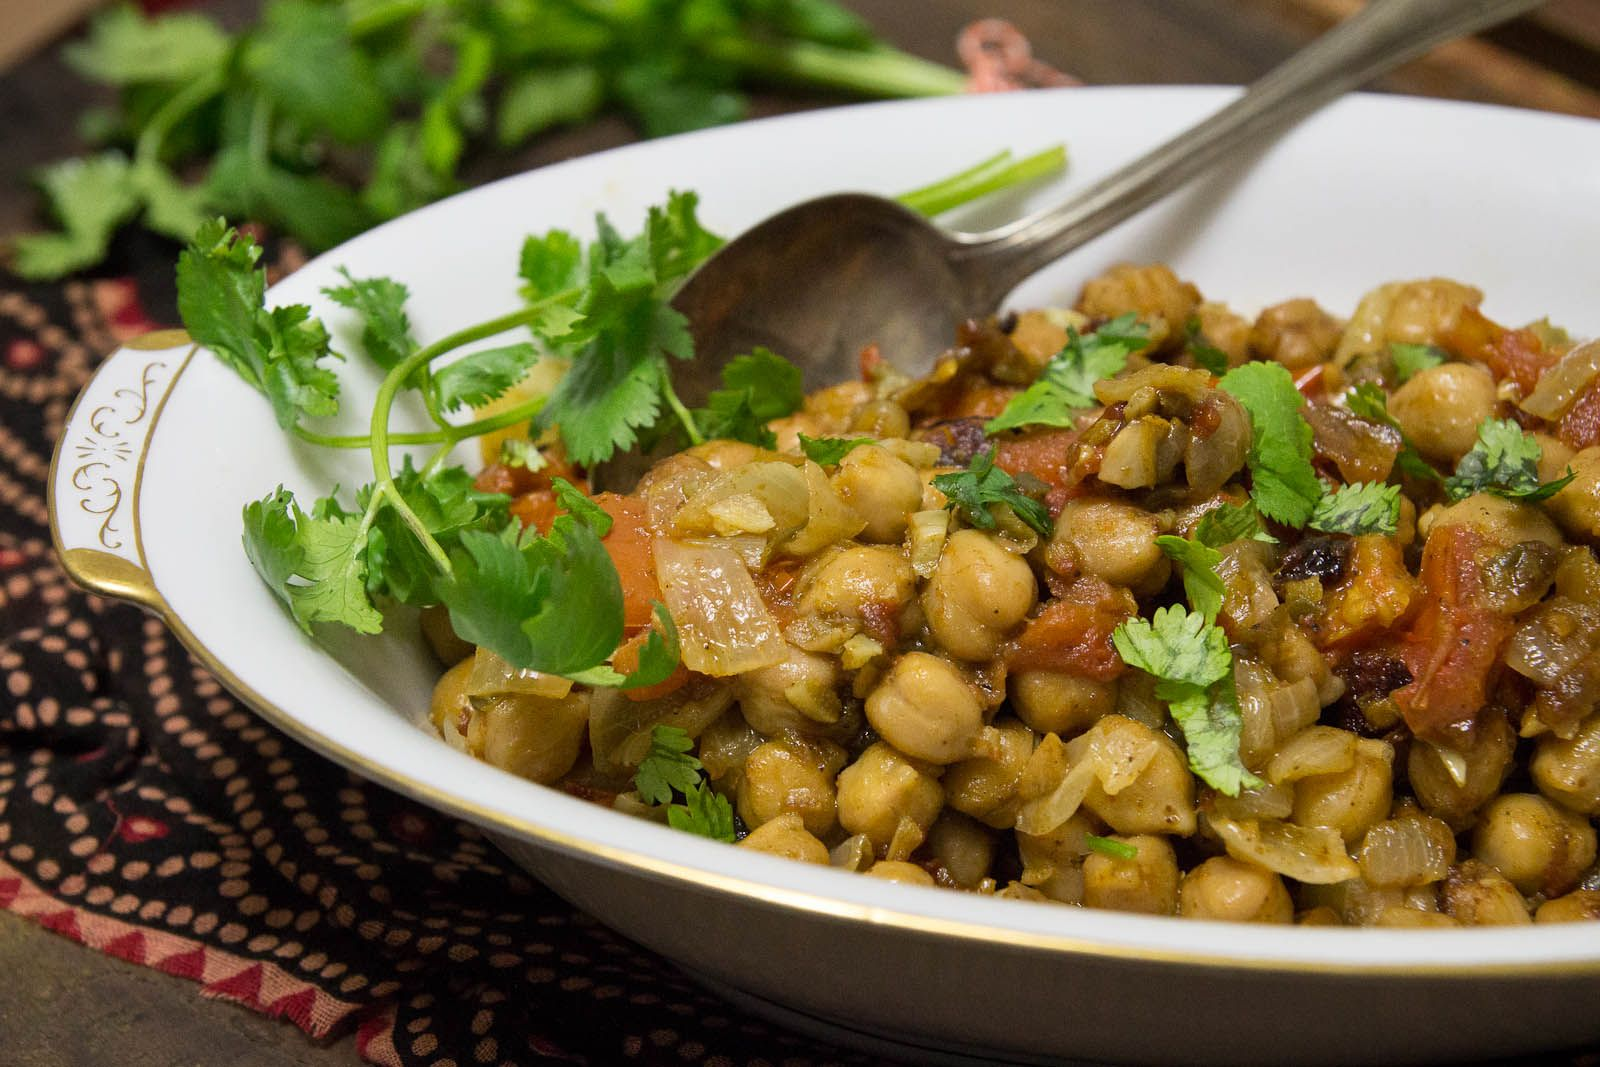 Super easy chana masala indiaphile chana masala recipe by indiaphilefo forumfinder Image collections